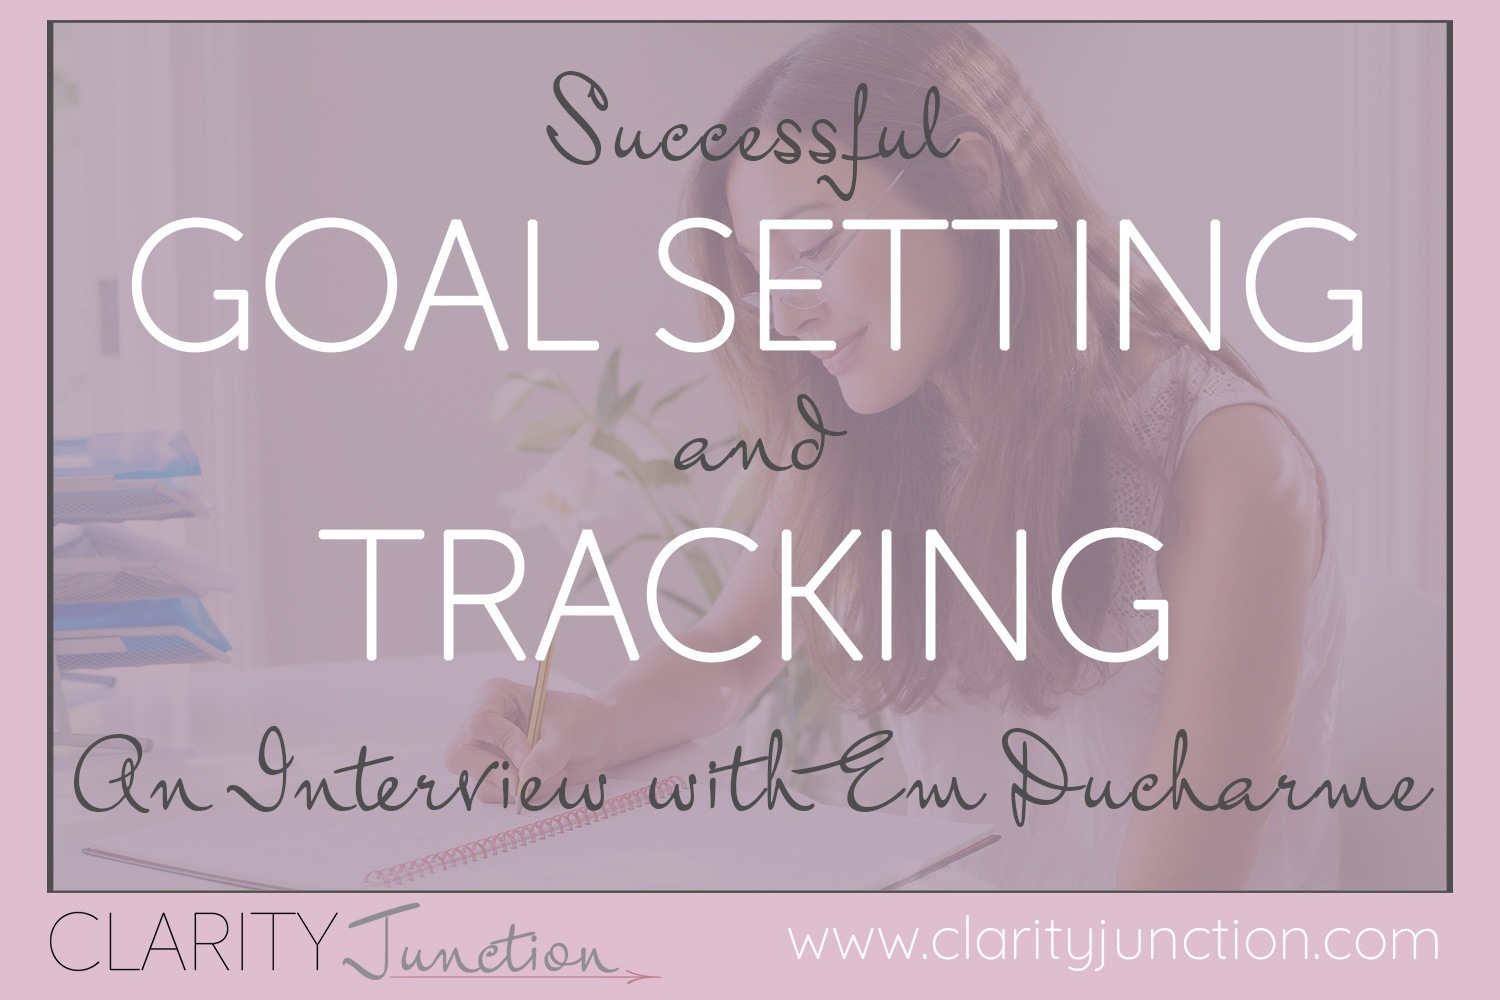 Successful Goal Setting and Tracking